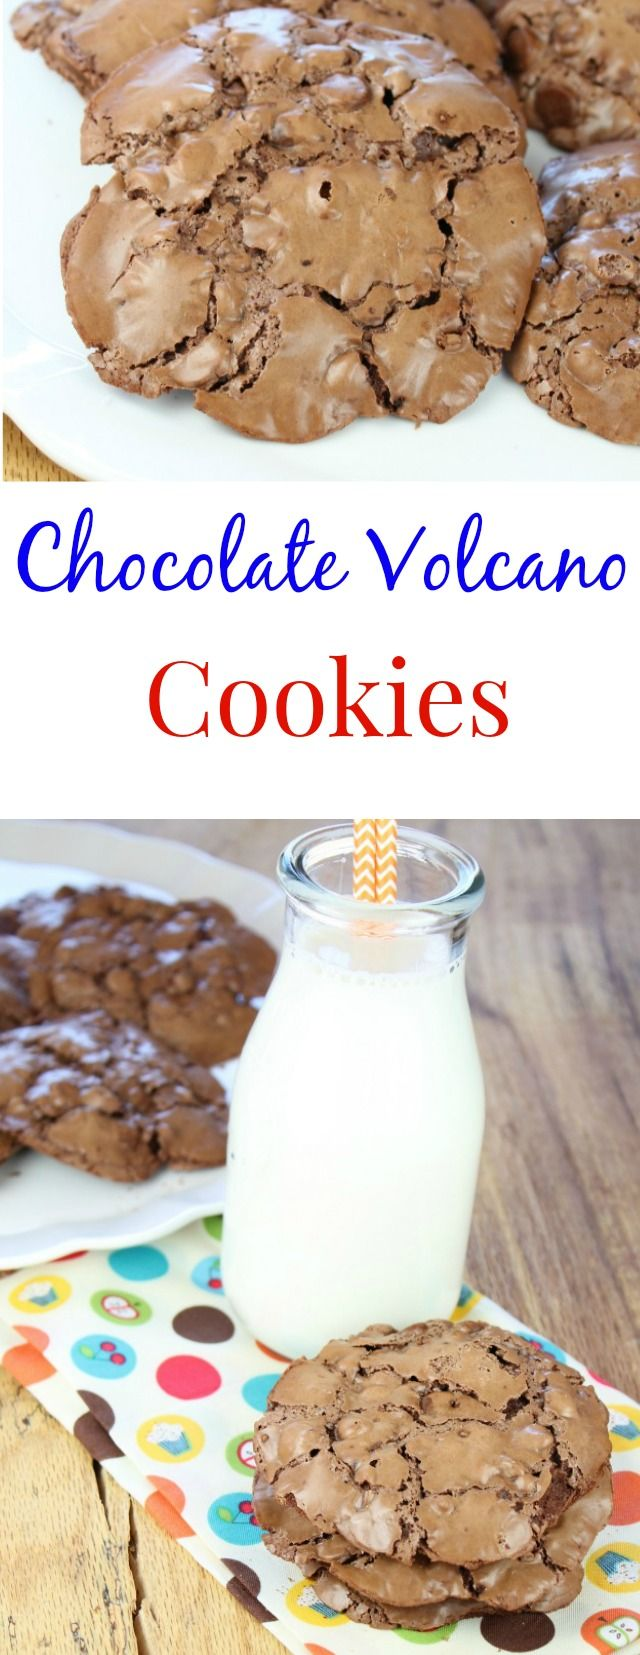 Chocolate Volcano Cookies ~ recipe found at missinthekitchen.com